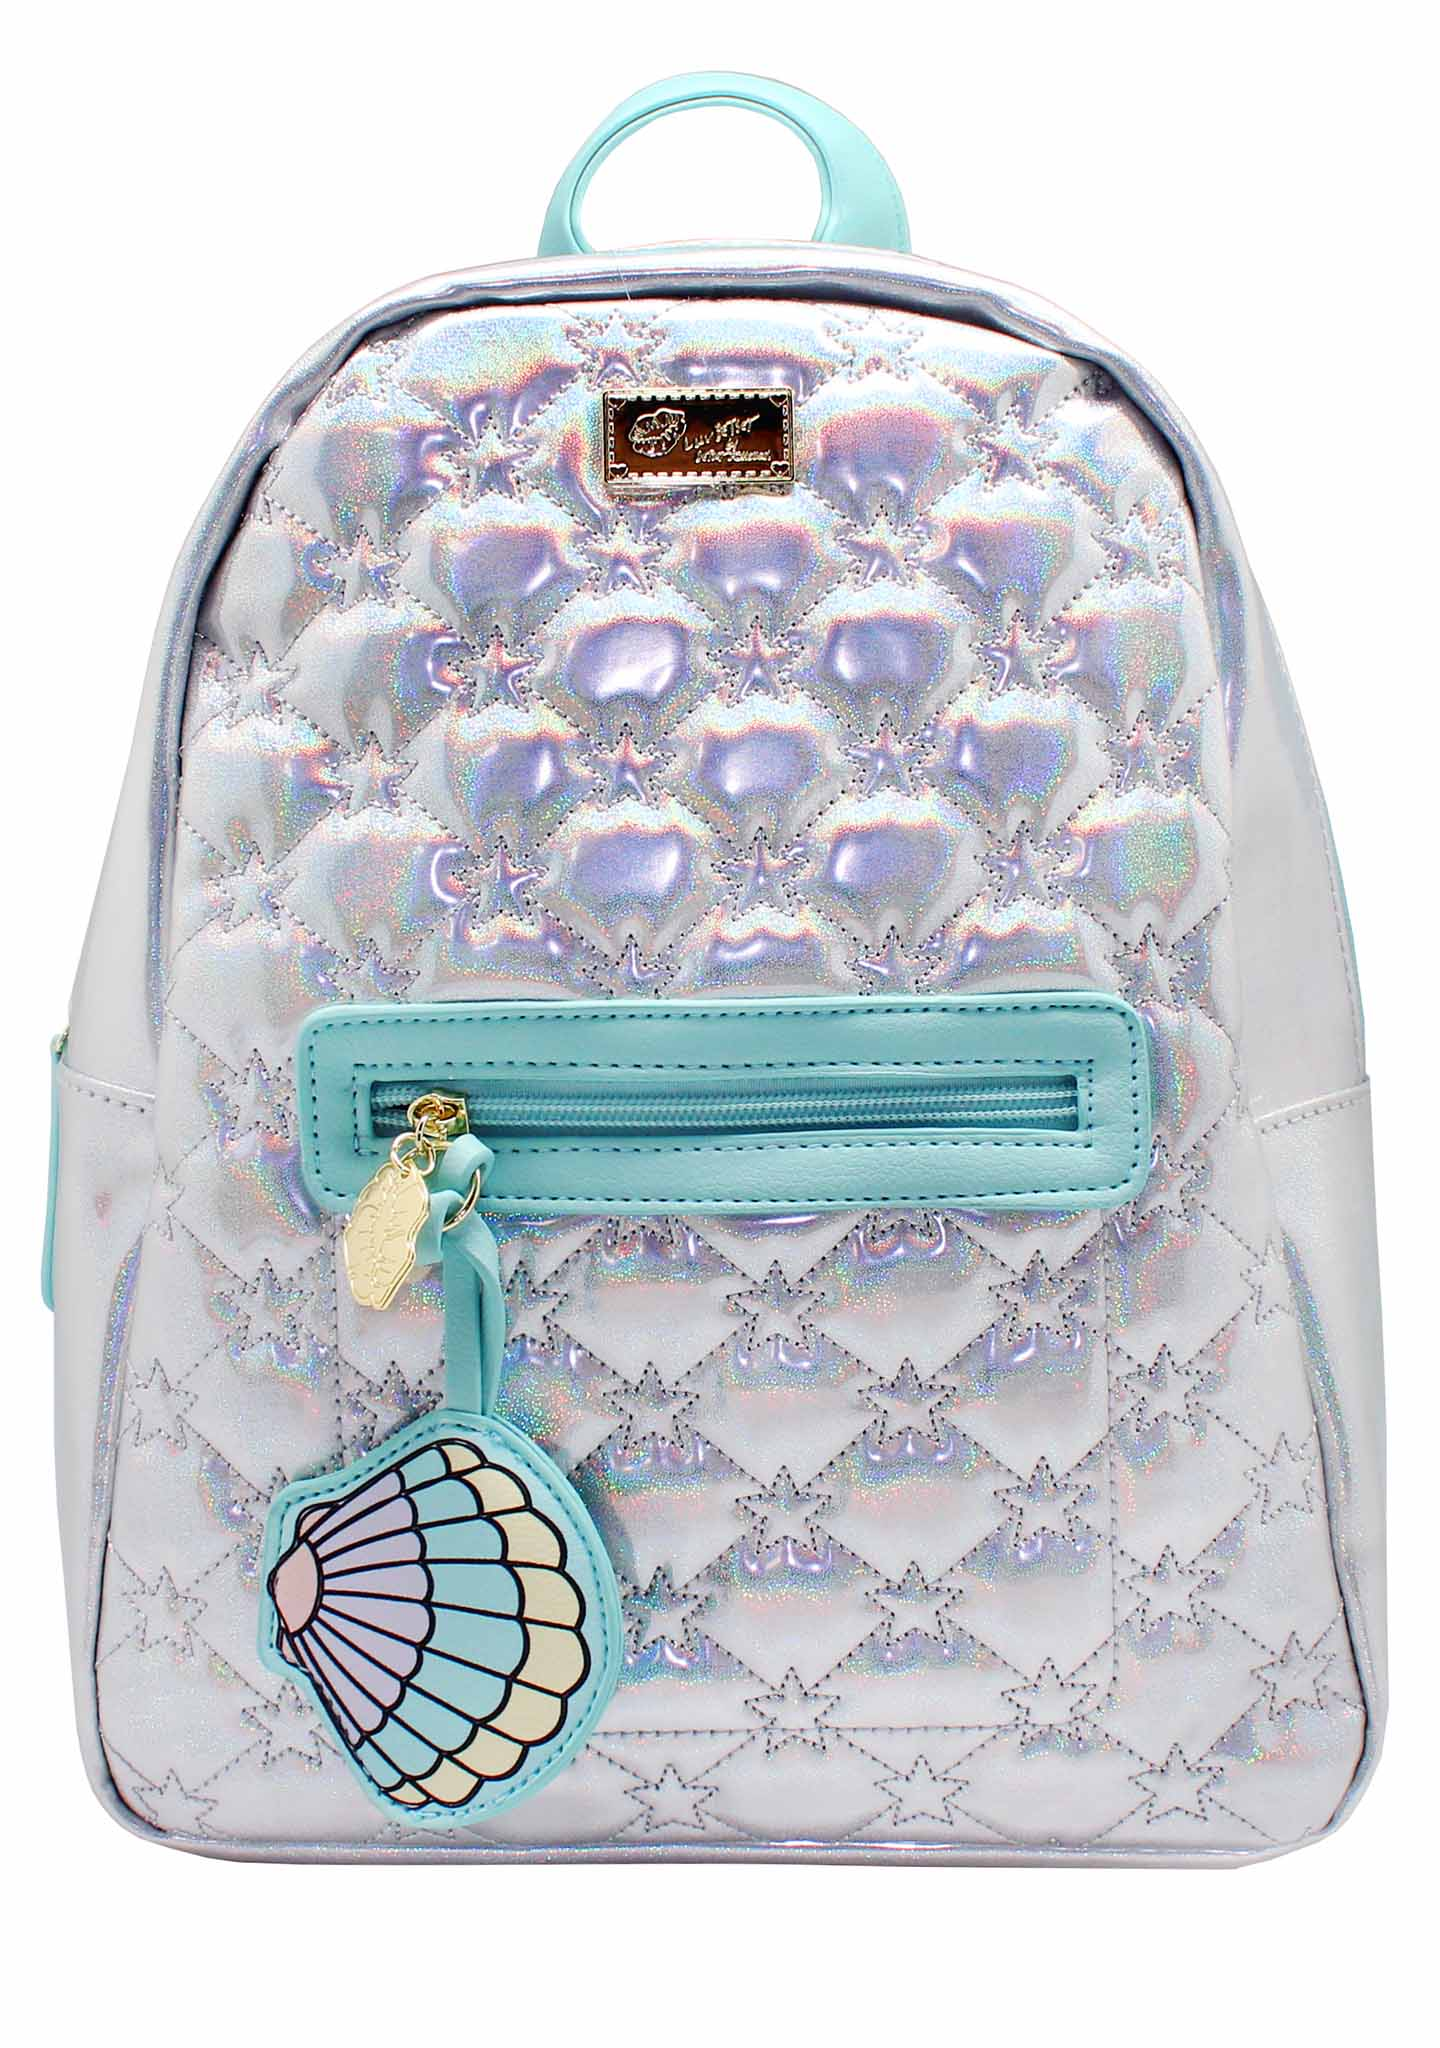 LBDemi Holographic Star Backpack